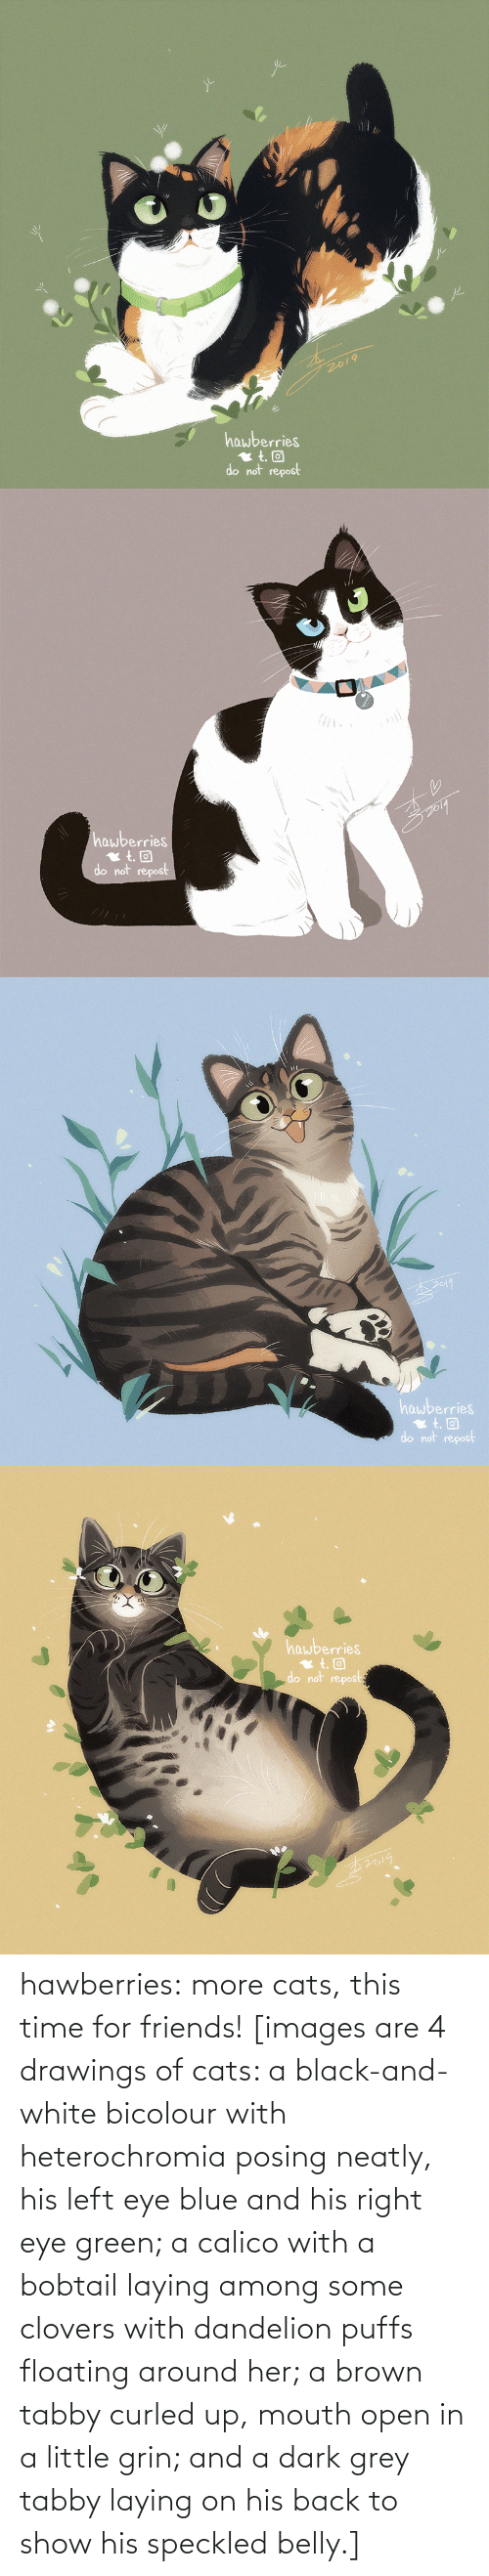 open: 2019  hawberries  do not repost   hawberries  do not repost   hawberries  do not repost   hawberries  do not repost hawberries: more cats, this time for friends! [images are 4 drawings of cats: a black-and-white bicolour with heterochromia posing neatly, his left eye blue and his right eye green; a calico with a bobtail laying among some clovers with dandelion puffs floating around her; a brown tabby curled up, mouth open in a little grin; and a dark grey tabby laying on his back to show his speckled belly.]